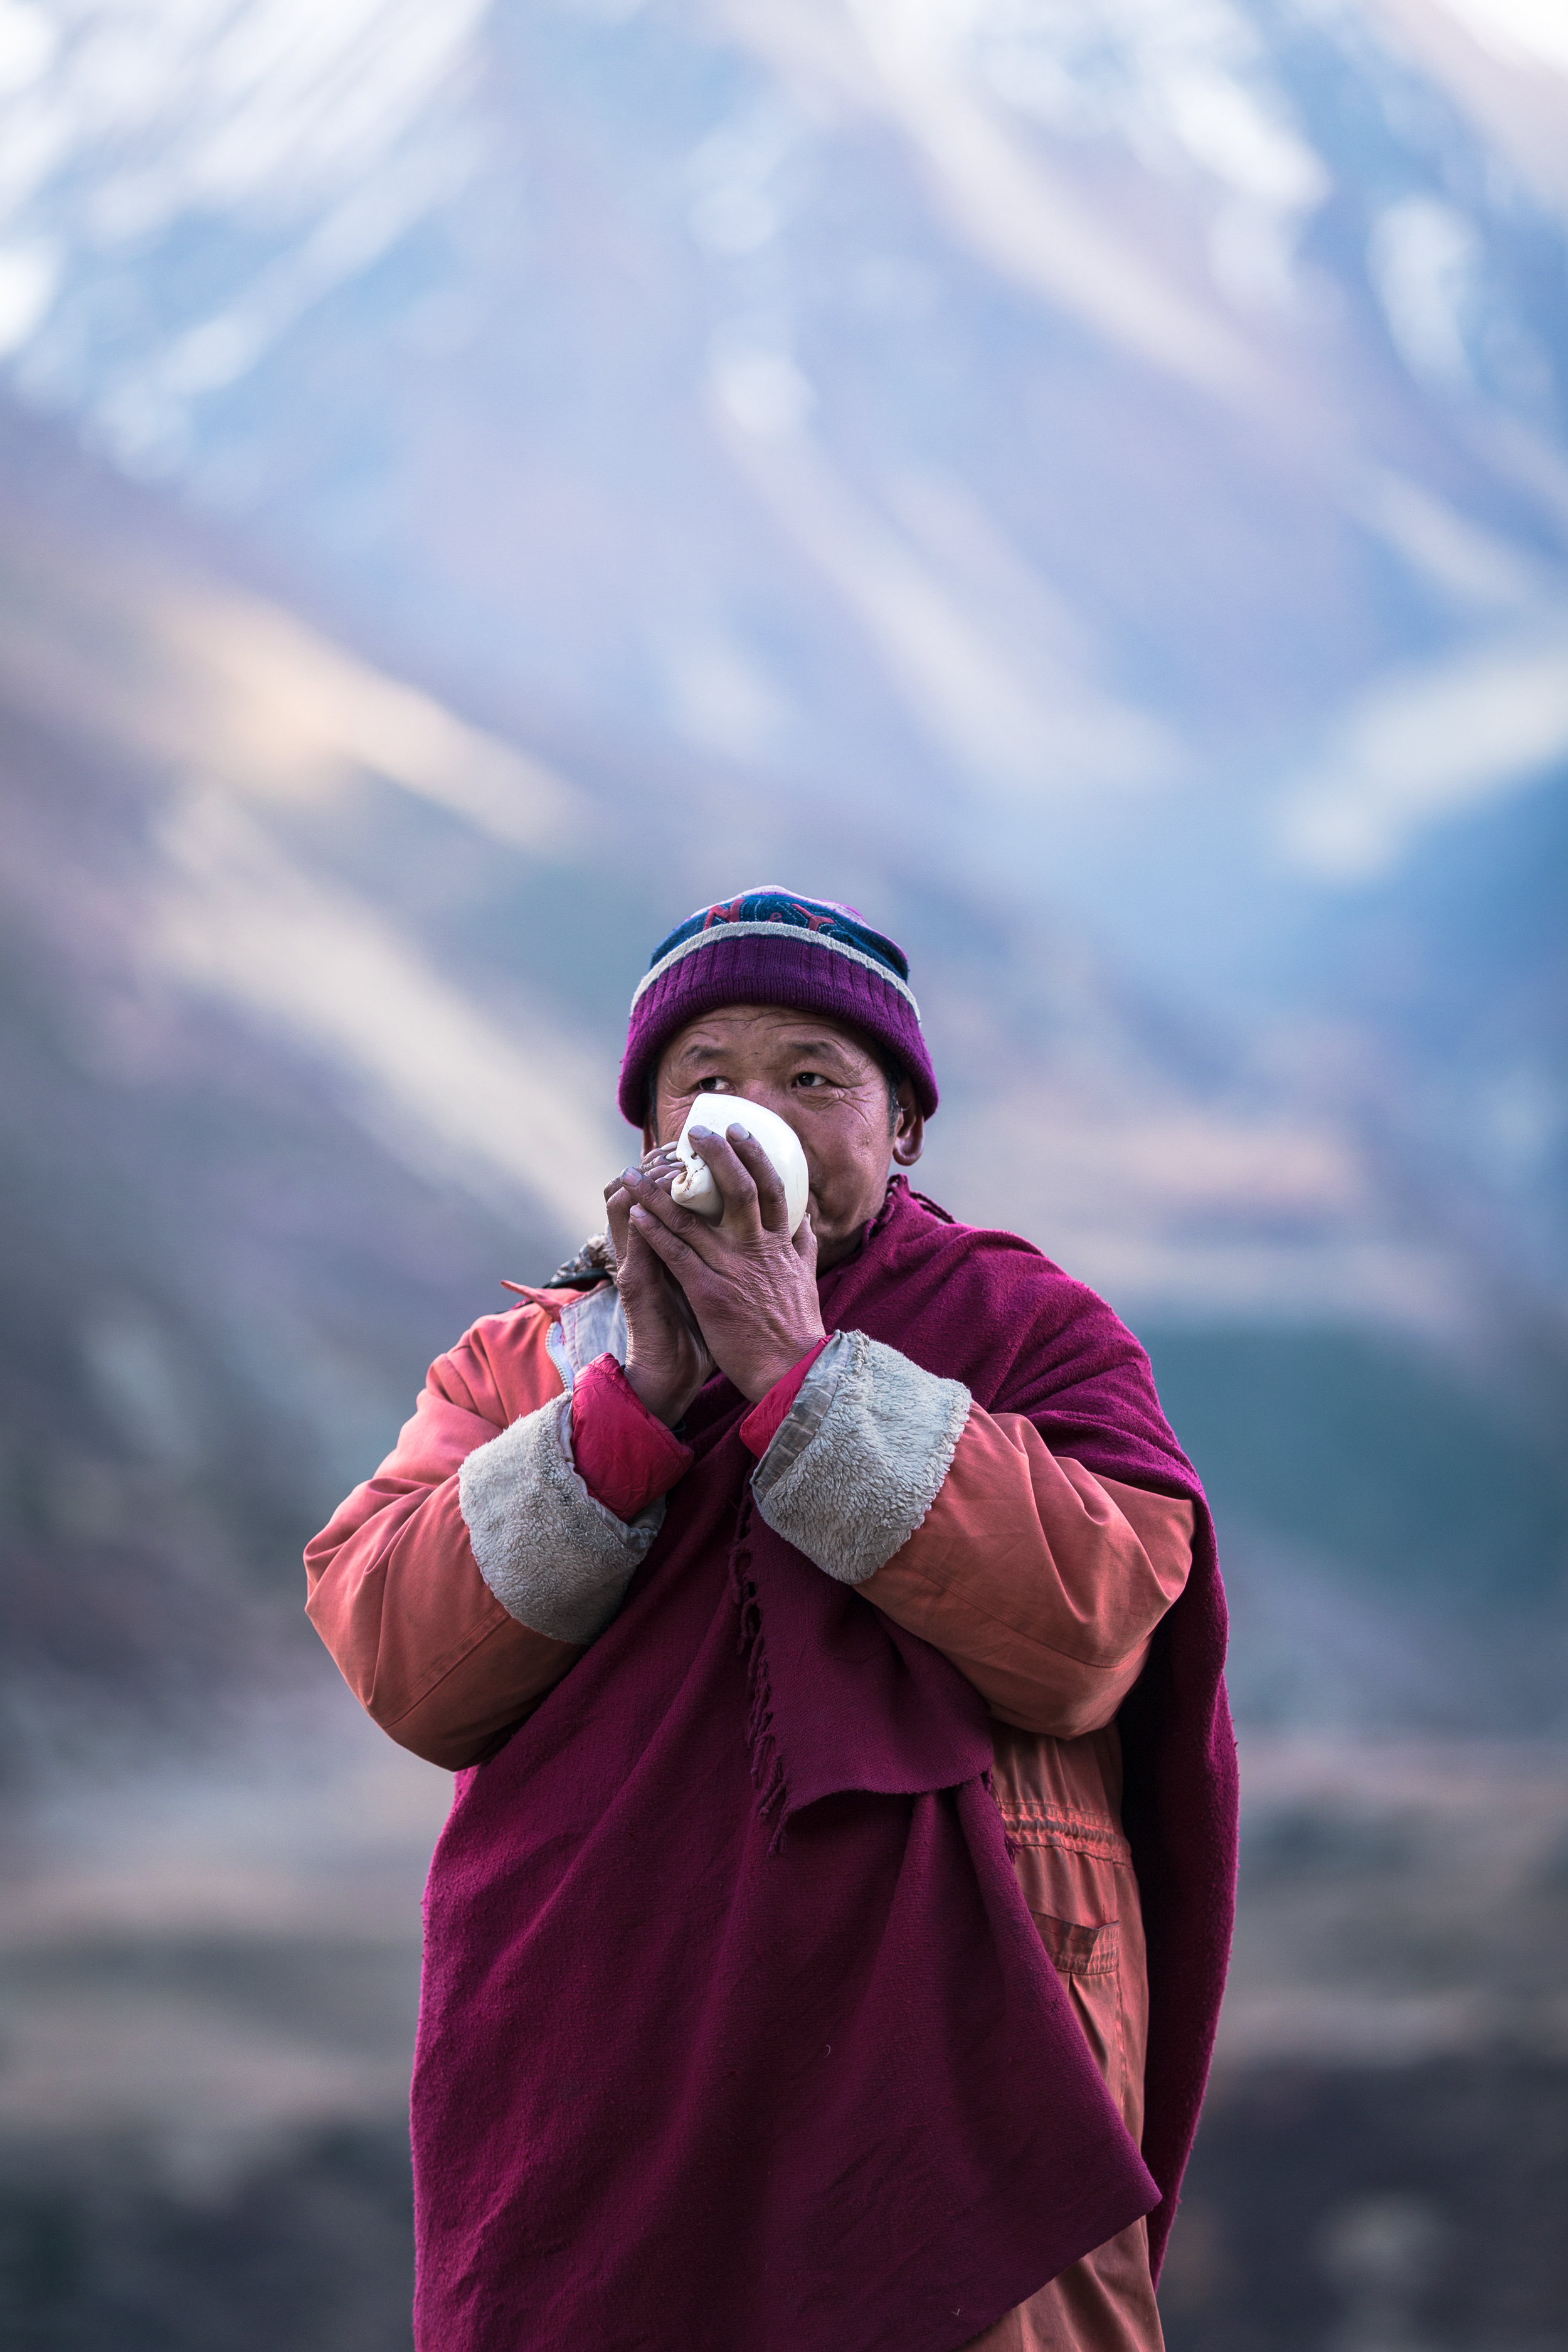 A monk blows into a conch shell at the monastery in Mu Gompa.